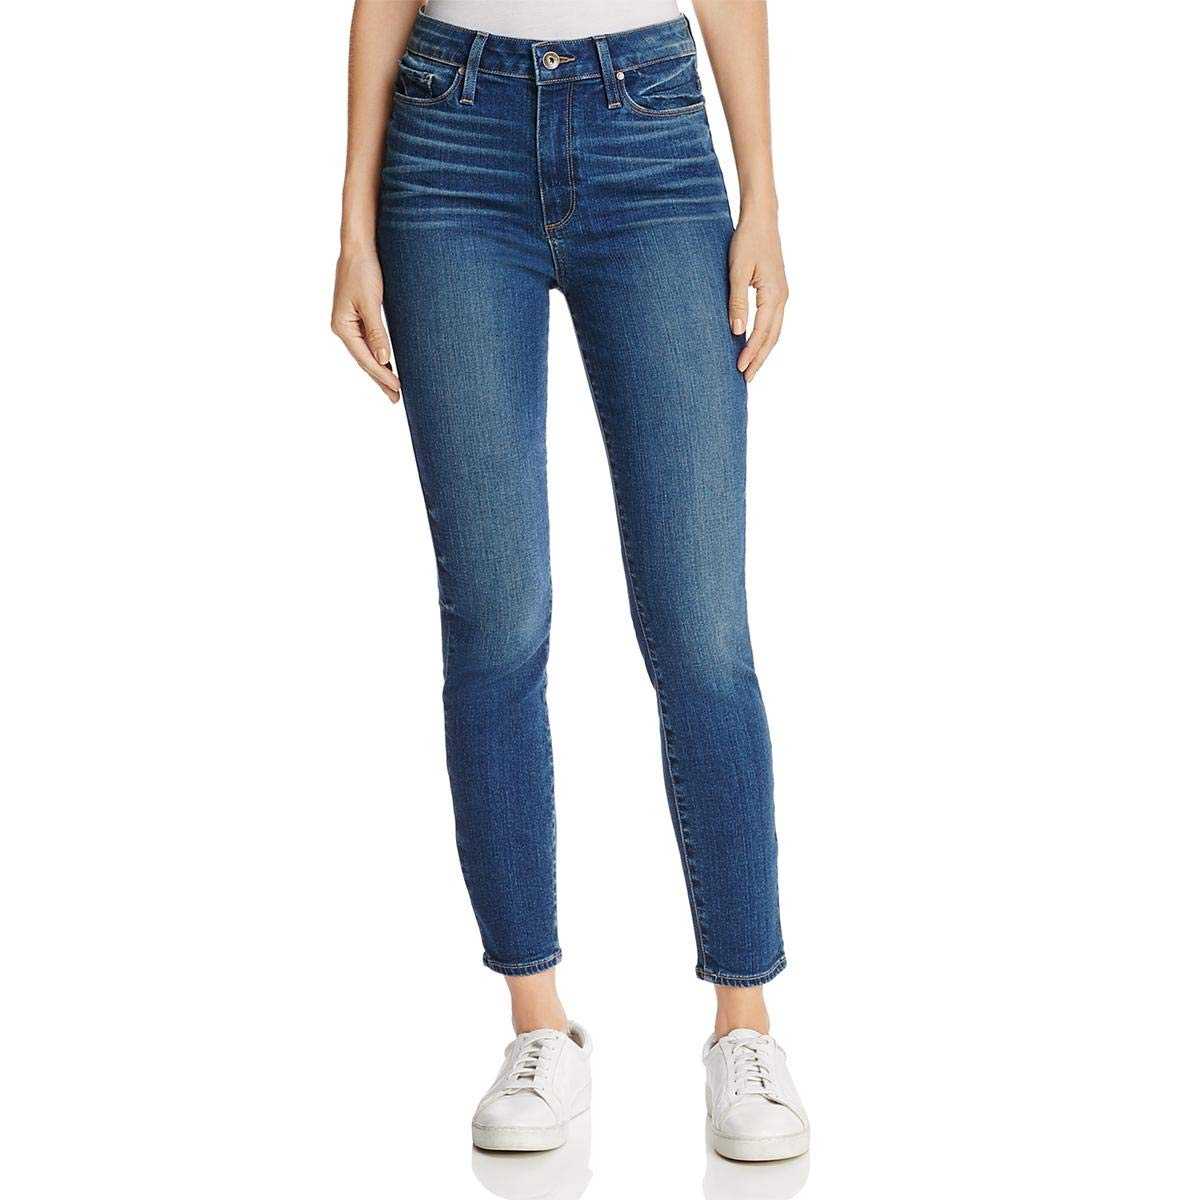 Paige Womens Margot HighRise Medium Wash Ankle Jeans bluee 25